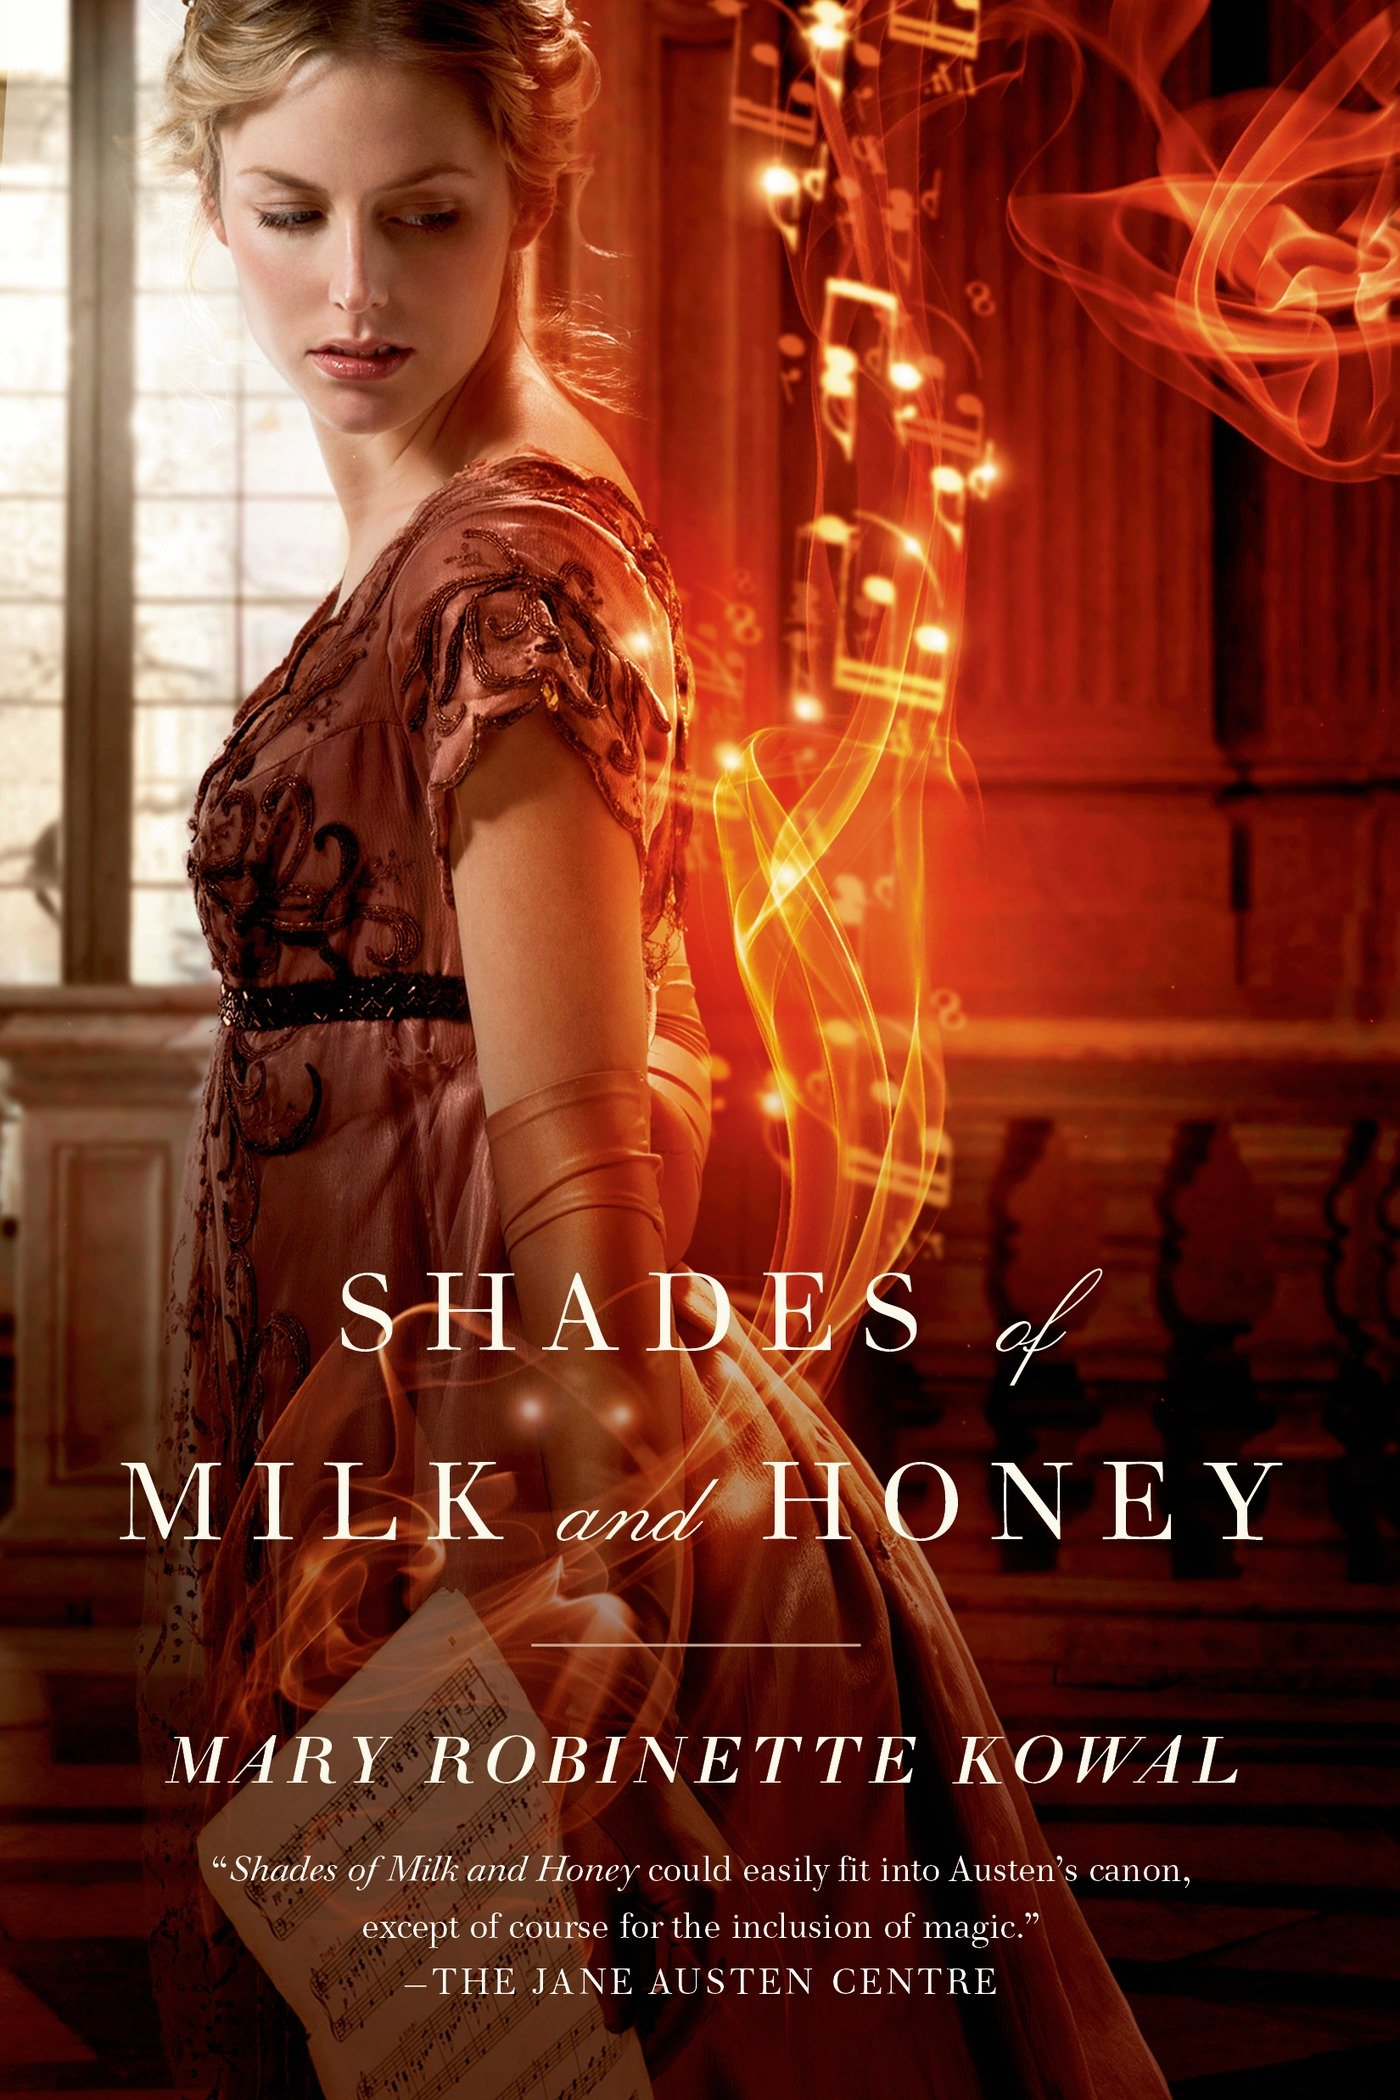 Shades-of-Milk-and-Honey-by-Mary-Robinette-Kowal.jpg